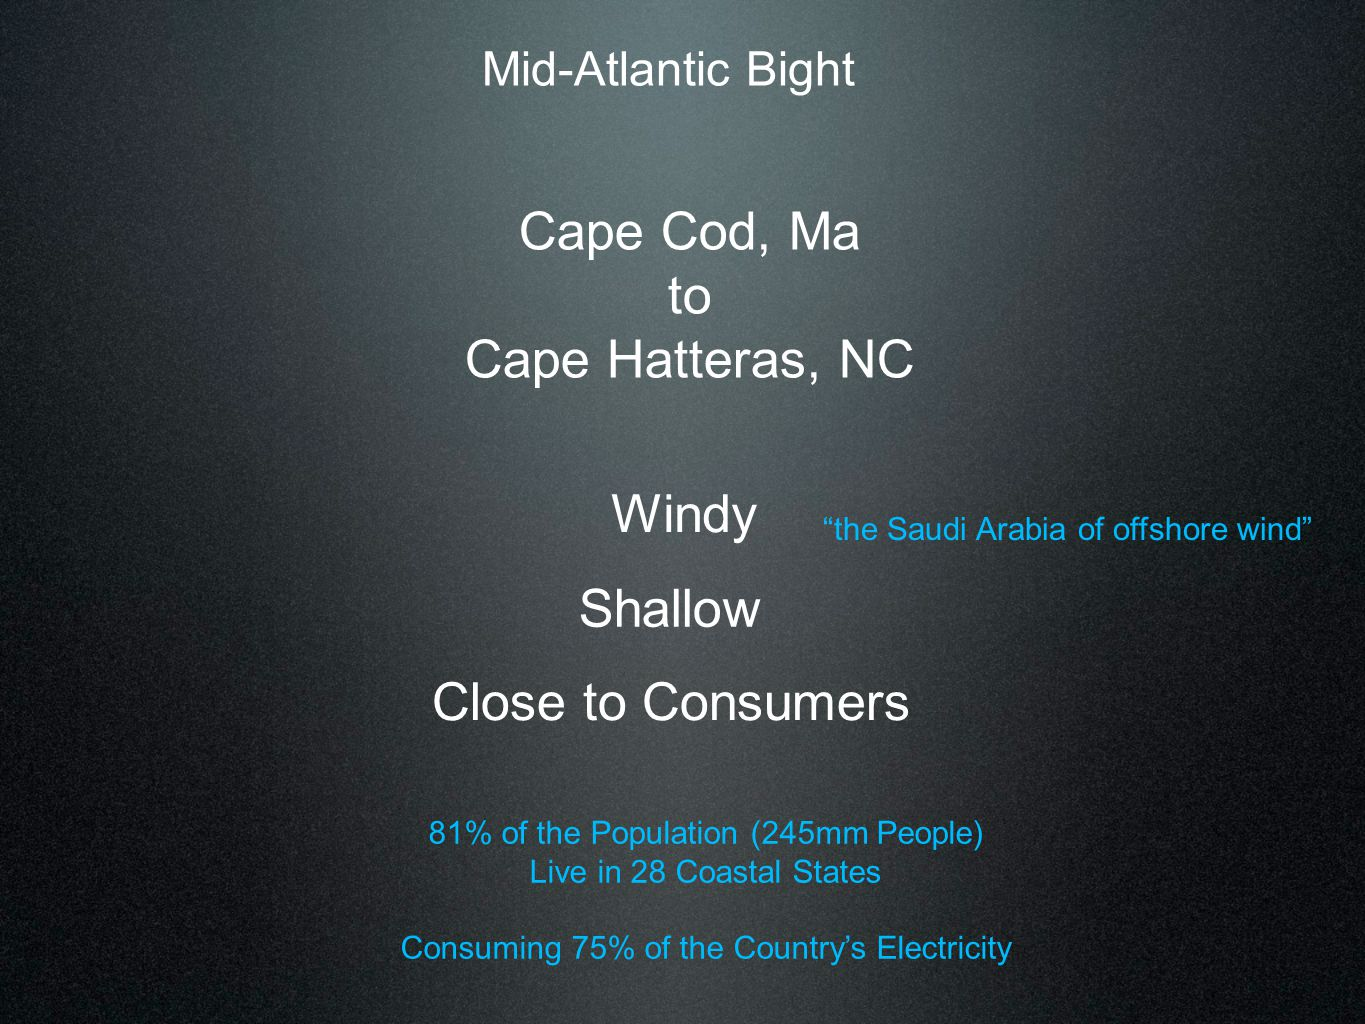 "Mid-Atlantic Bight Cape Cod, Ma to Cape Hatteras, NC Windy Shallow Close to Consumers ""the Saudi Arabia of offshore wind"" 81% of the Population (245mm"